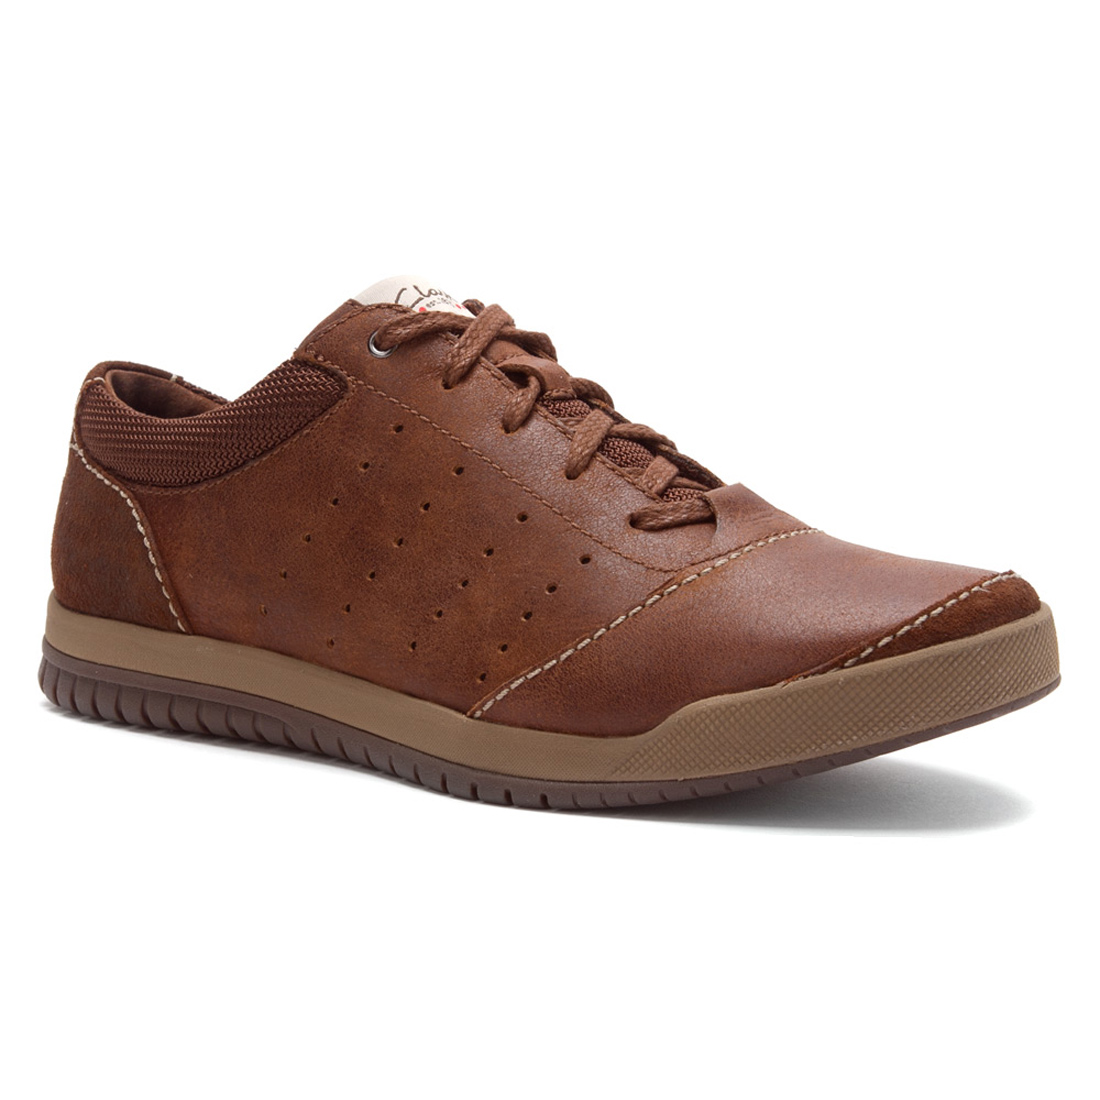 Clarks Men's Rhombus Euro Casual Oxfords - Tan Suede | Discount Clarks Men's  Casual Shoes & More - Shoolu.com